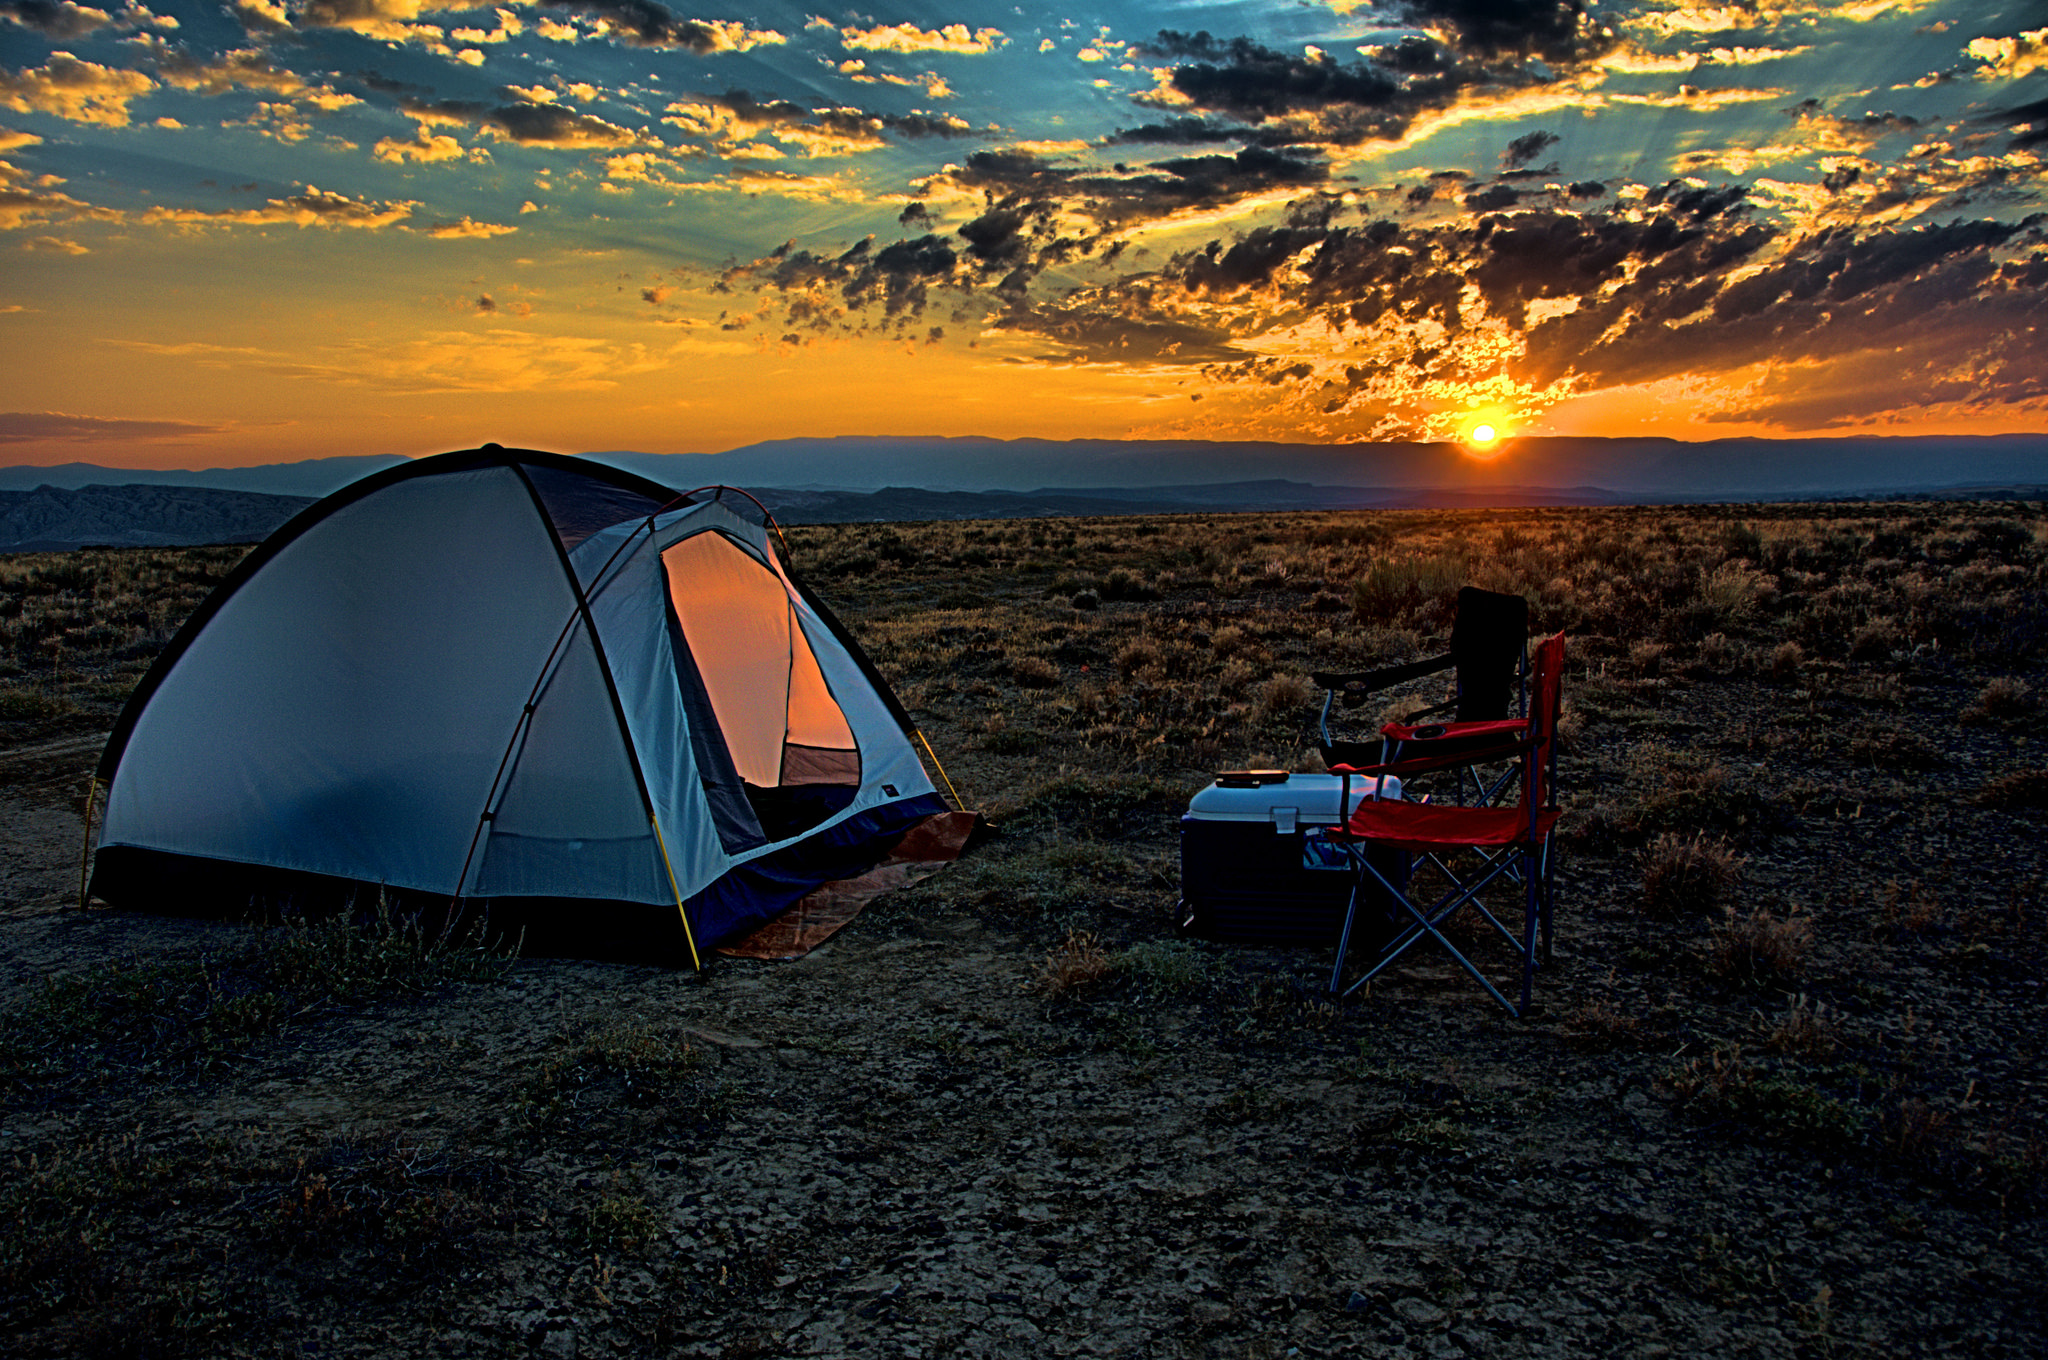 Camping chair and tent on a plain at sunset